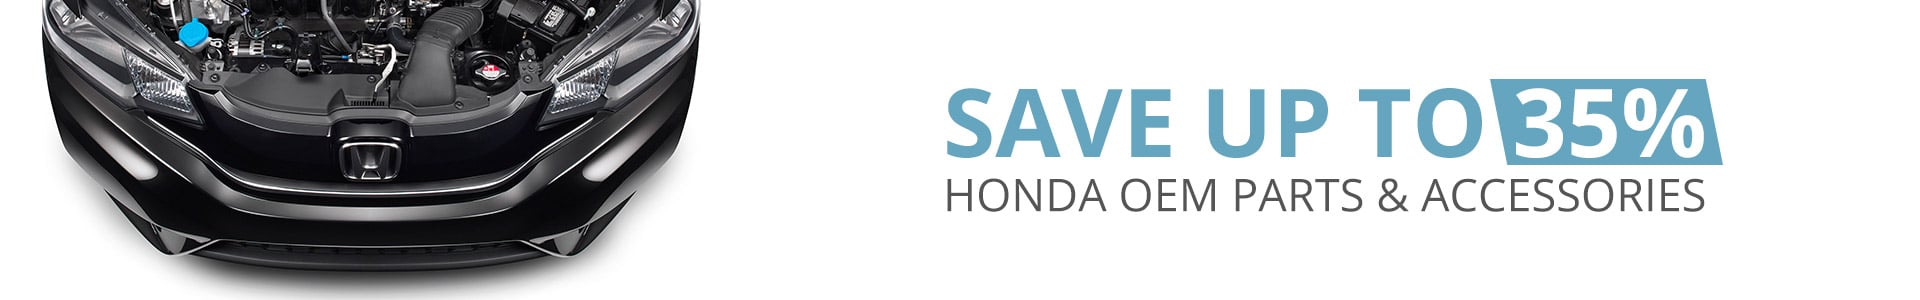 Honda Genuine Parts Savings